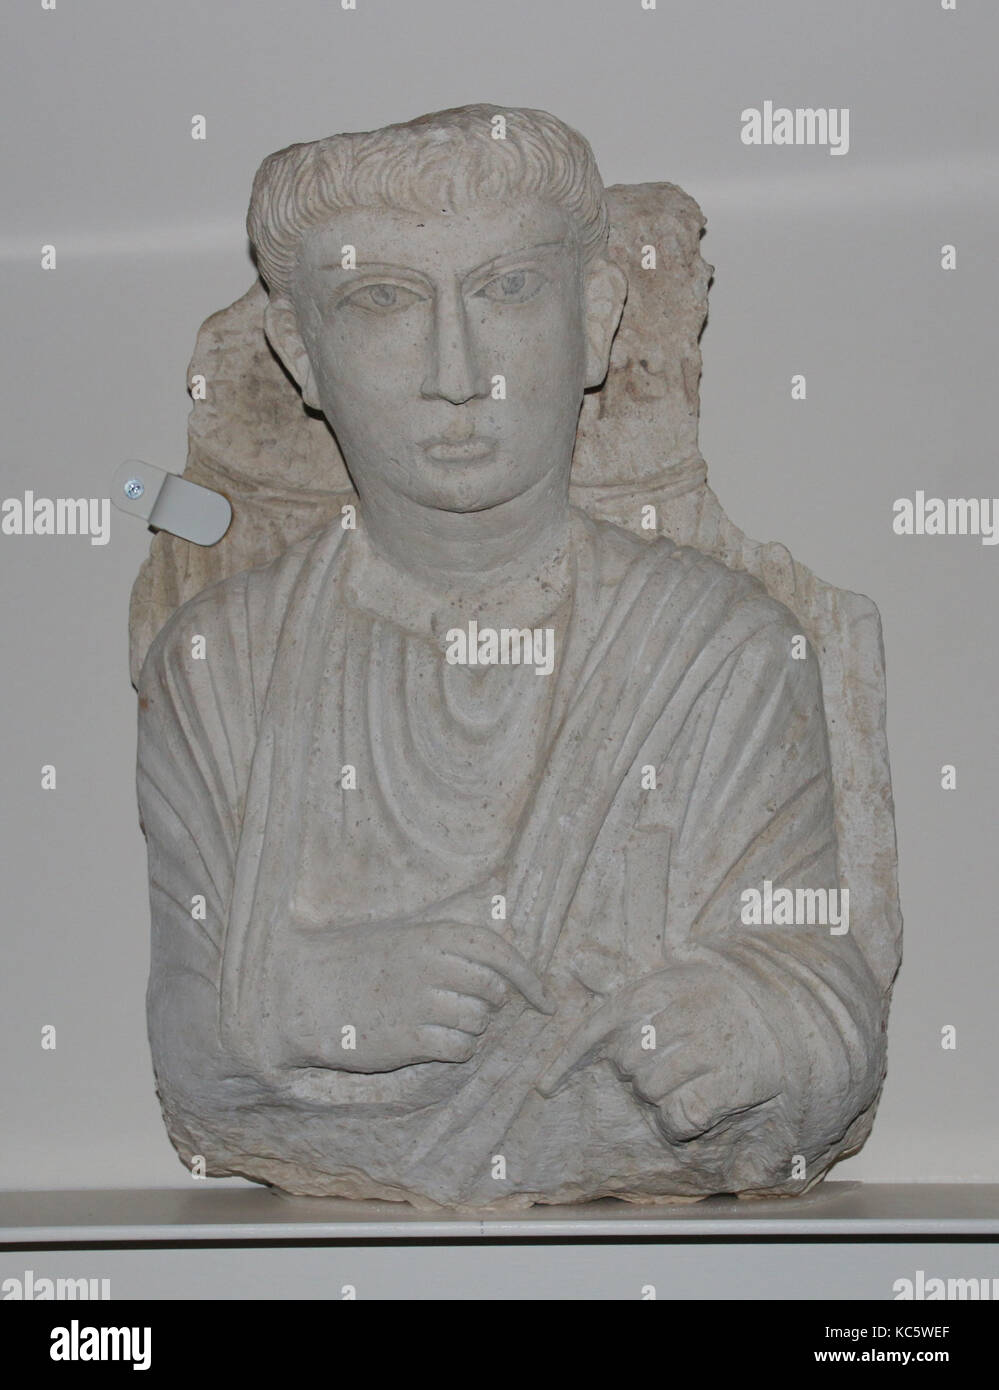 Funerary relief, ca. 150–200, Syria, probably from Palmyra, Limestone, 19 1/4 x 13 7/8 x 8 15/16 in. (48.9 x 35.3 - Stock Image